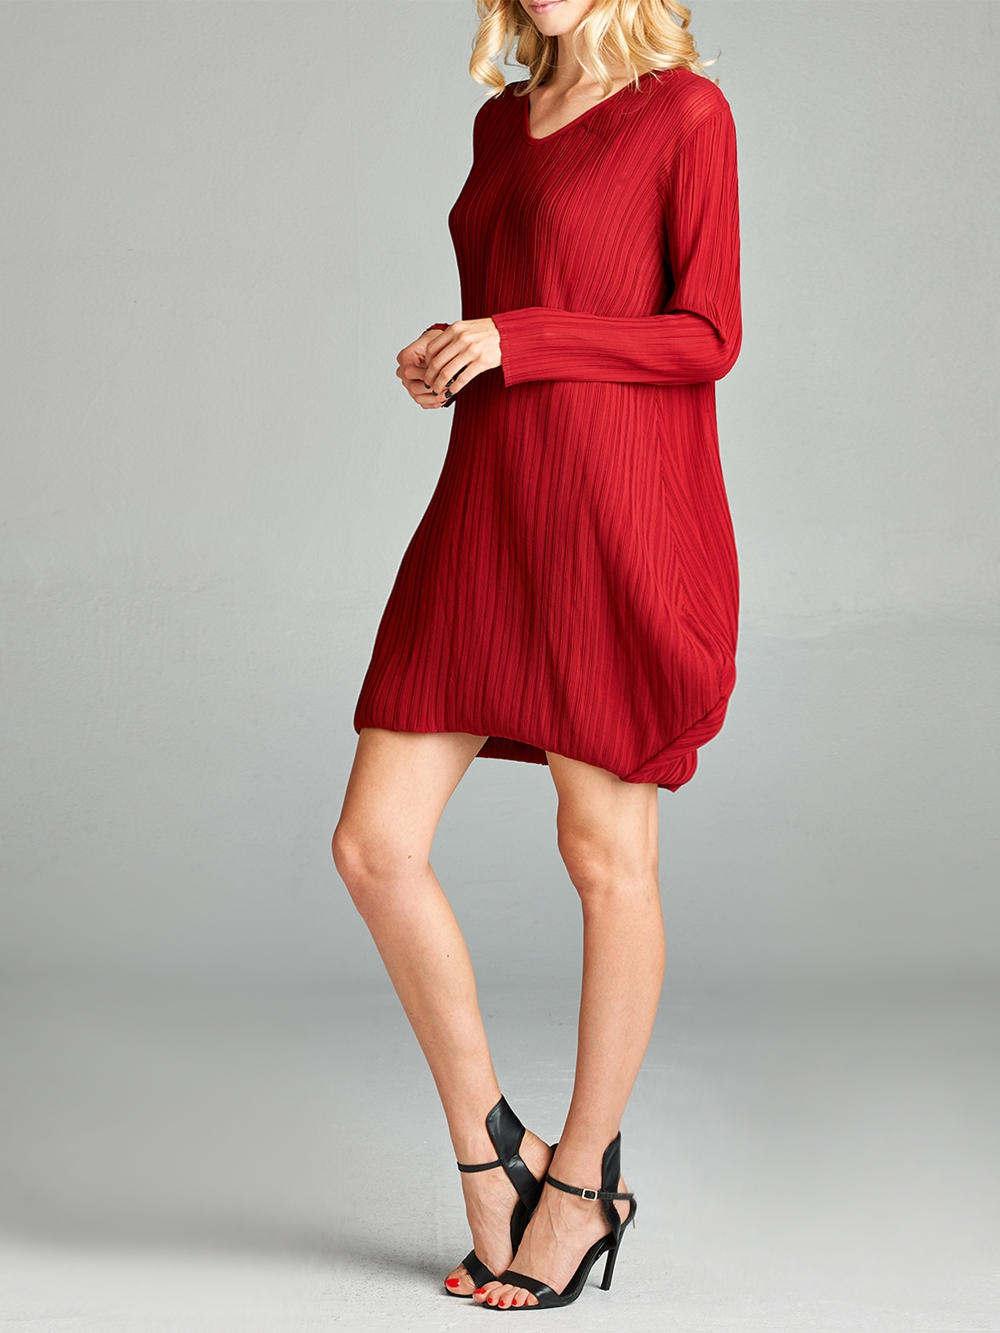 Pleated Red Raya  Dress - orangeshine.com